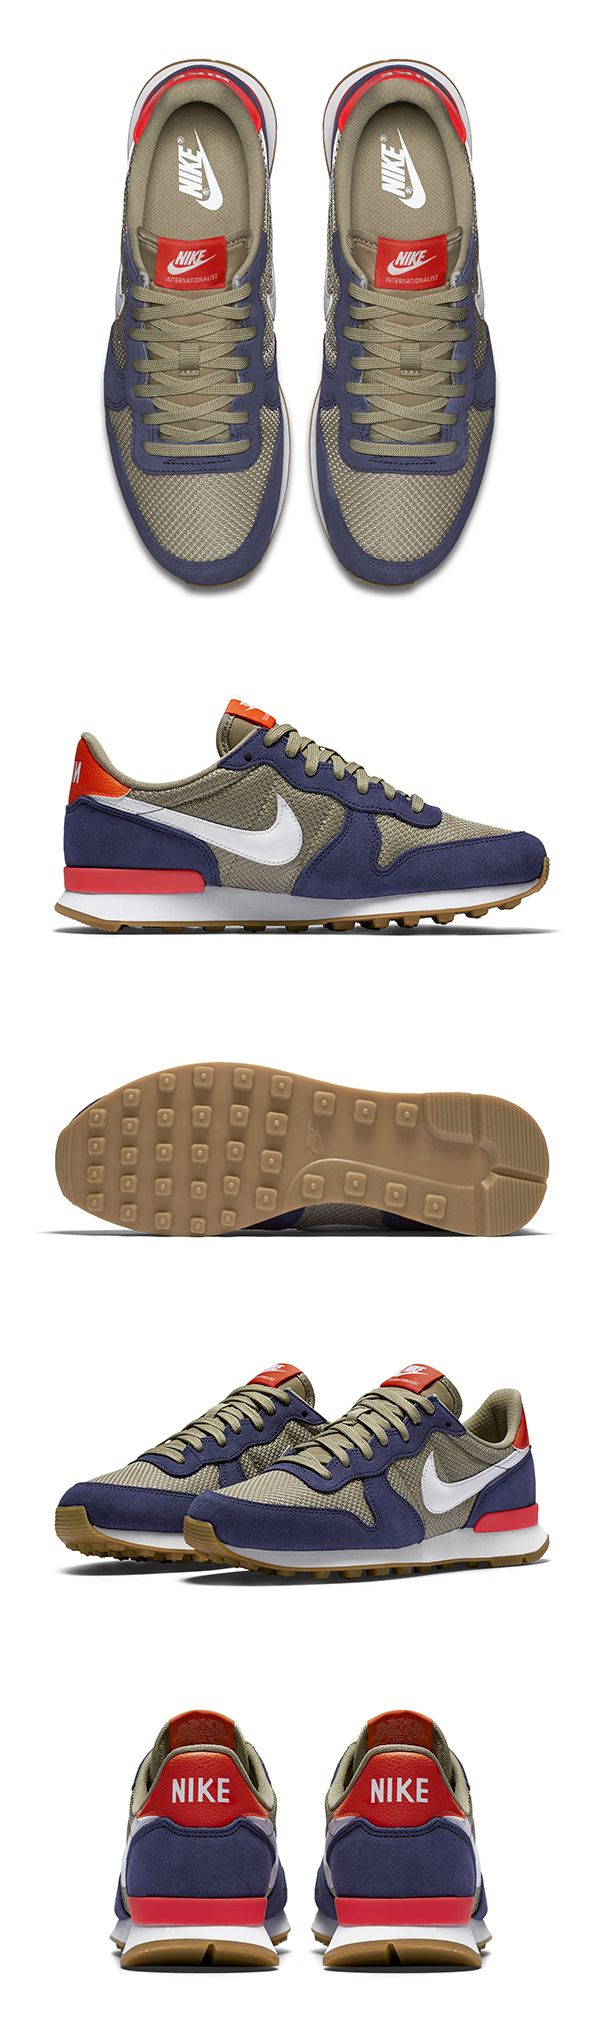 SNKRS of the Week // Travel the world or explore your city — the Nike Internationalist Women's Sneaker is a throwback shoe reimagined for style and comfort.